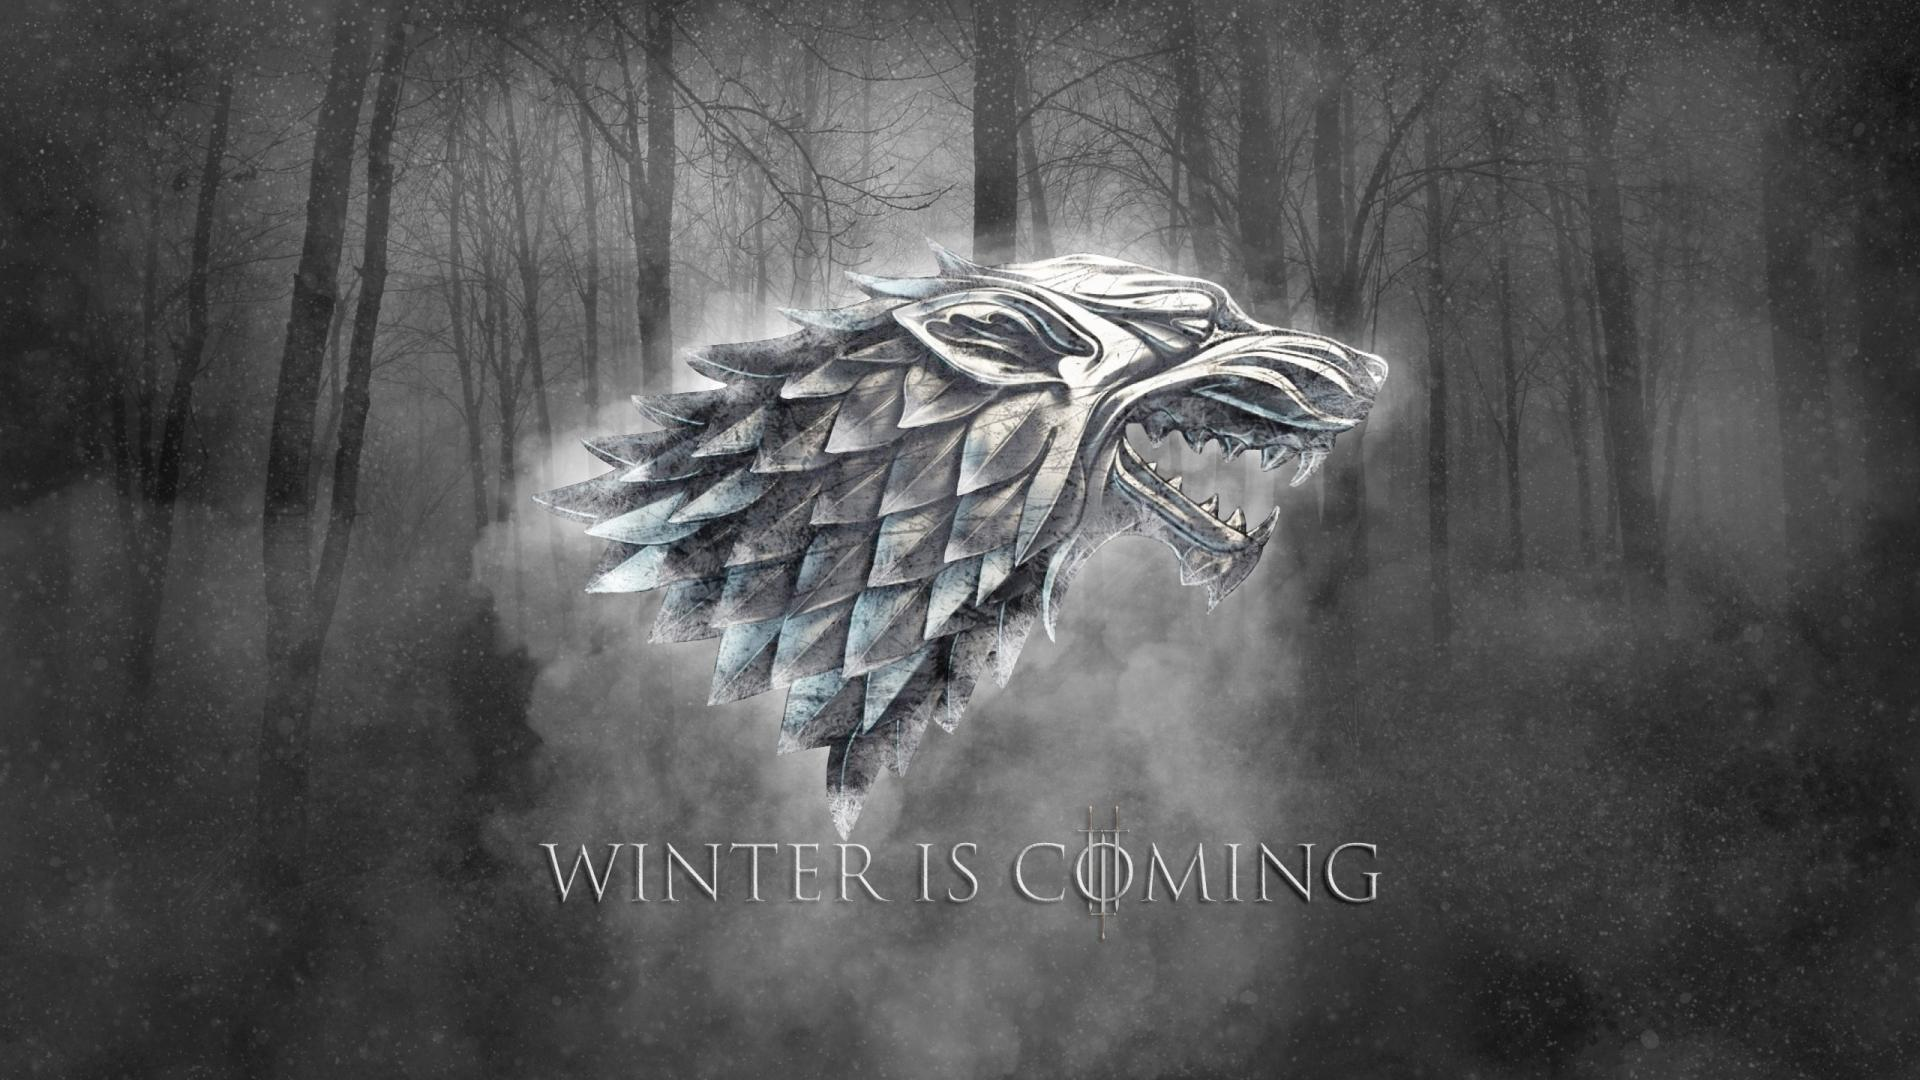 Game Of Thrones Wallpaper Hd Winter Is Coming Images Pictures 1920x1080